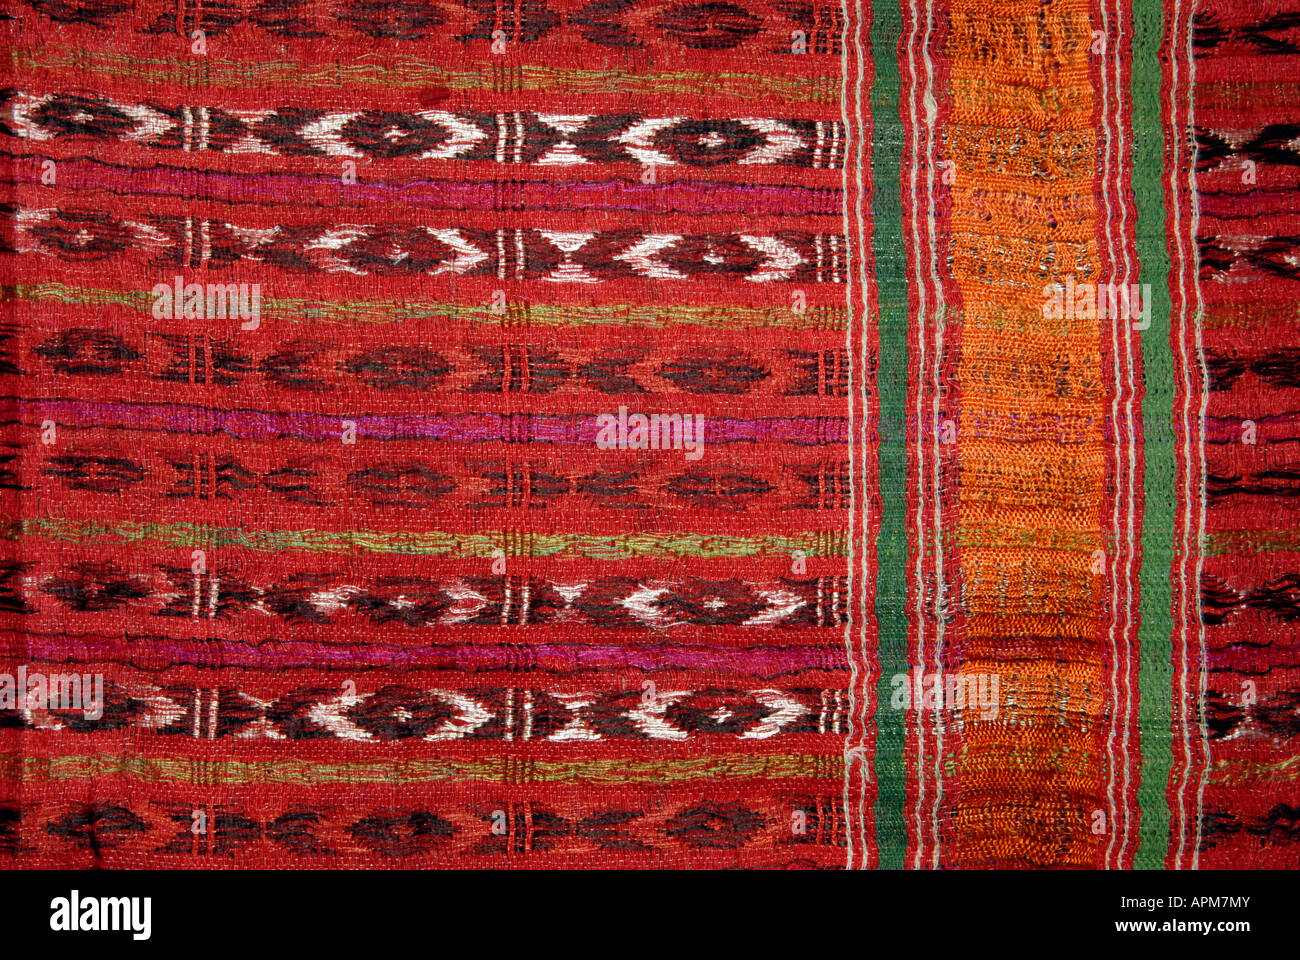 Sumptuous silk textile from India. Note If Used in an editorial or scholarly context please credit Collection Ann - Stock Image